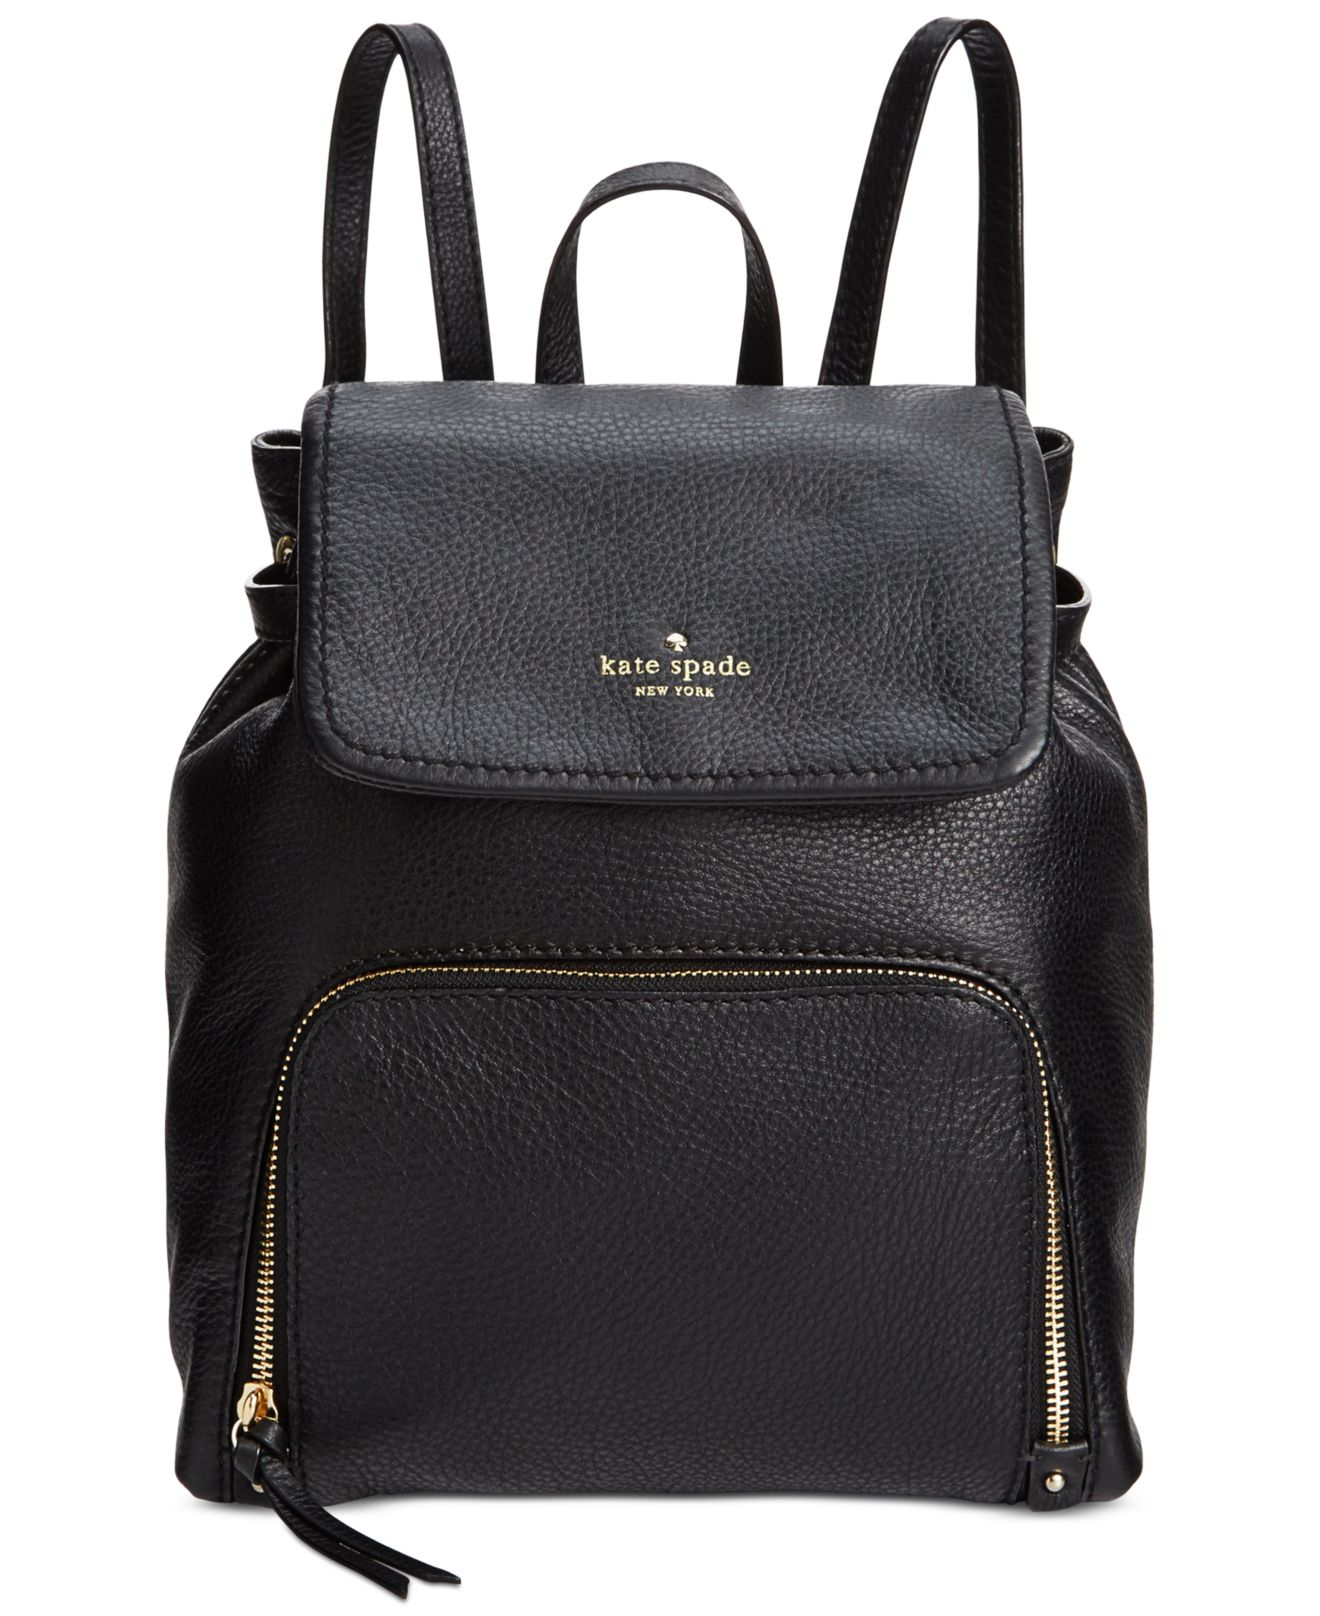 kate-spade-new-york-black-cobble-hill-charley-backpack-product-0-262233823-normal.jpeg